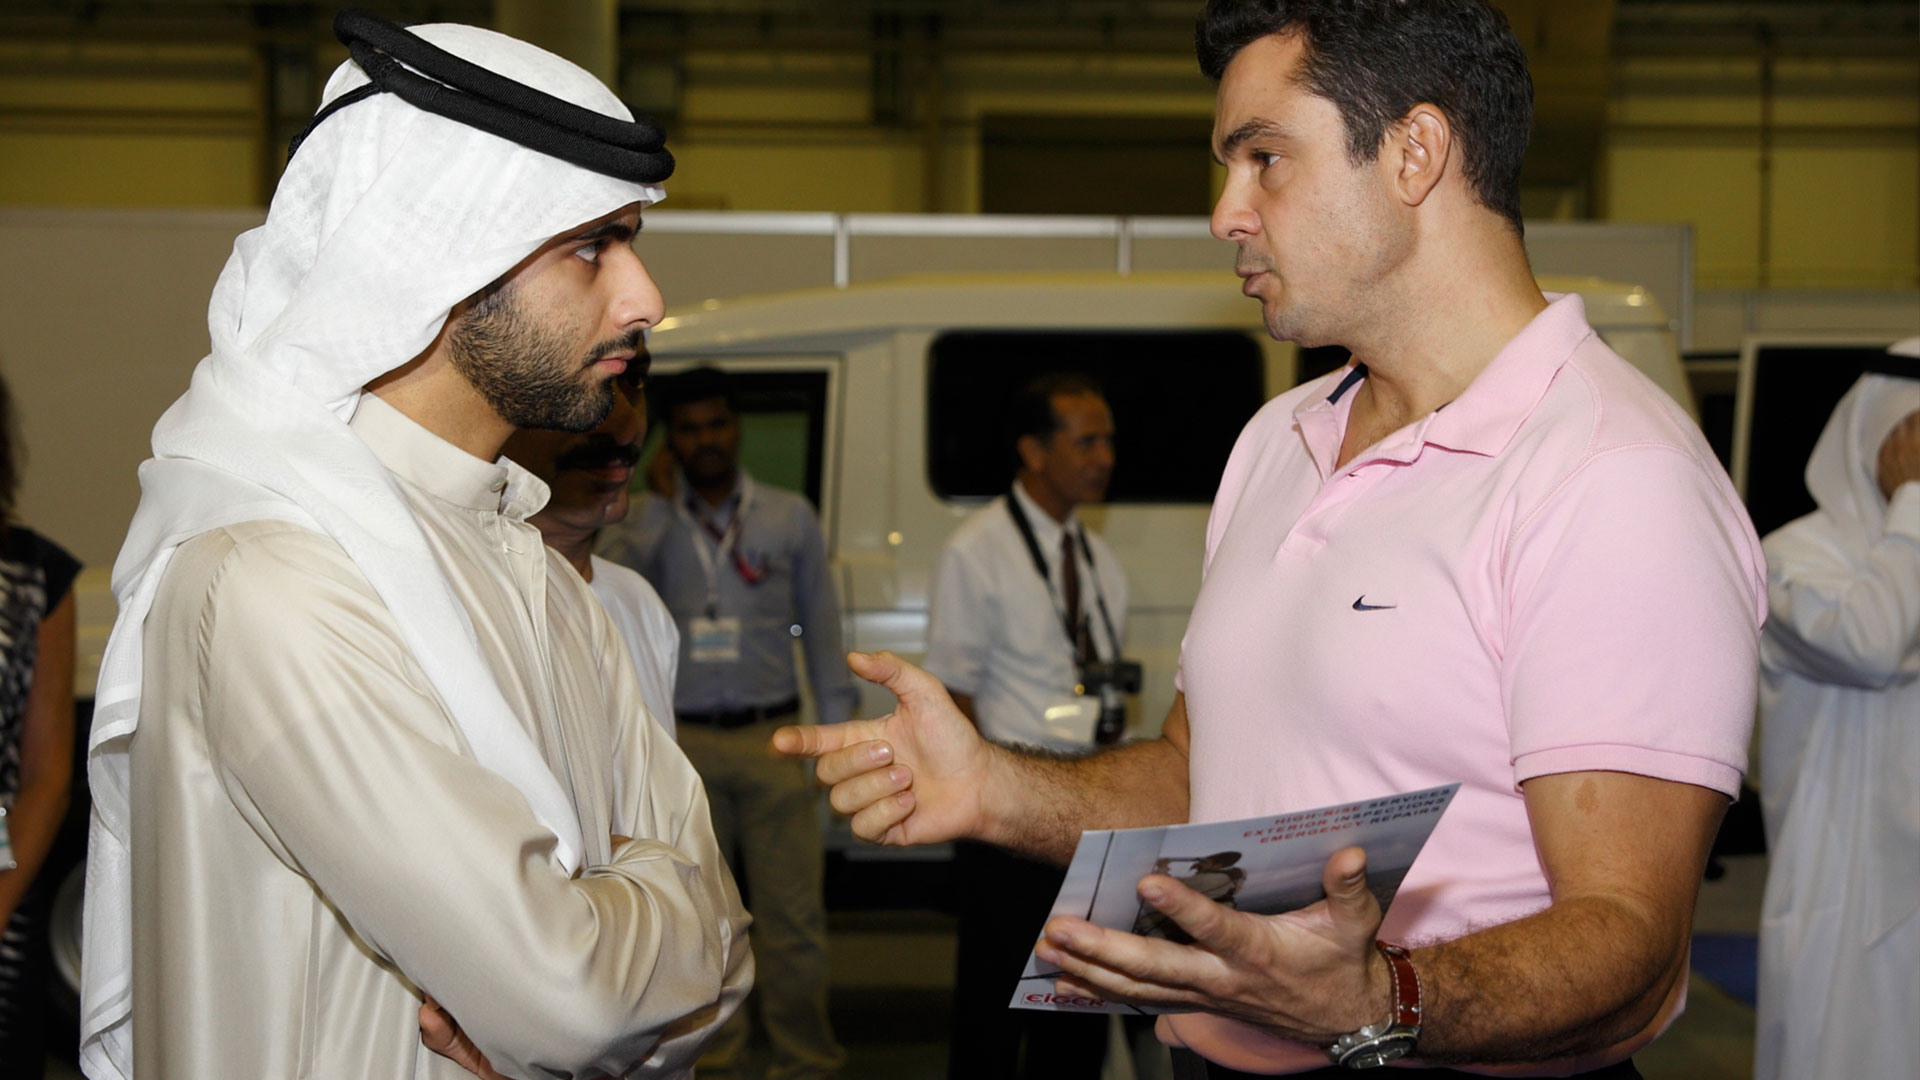 Meeting the Prince of Dubai